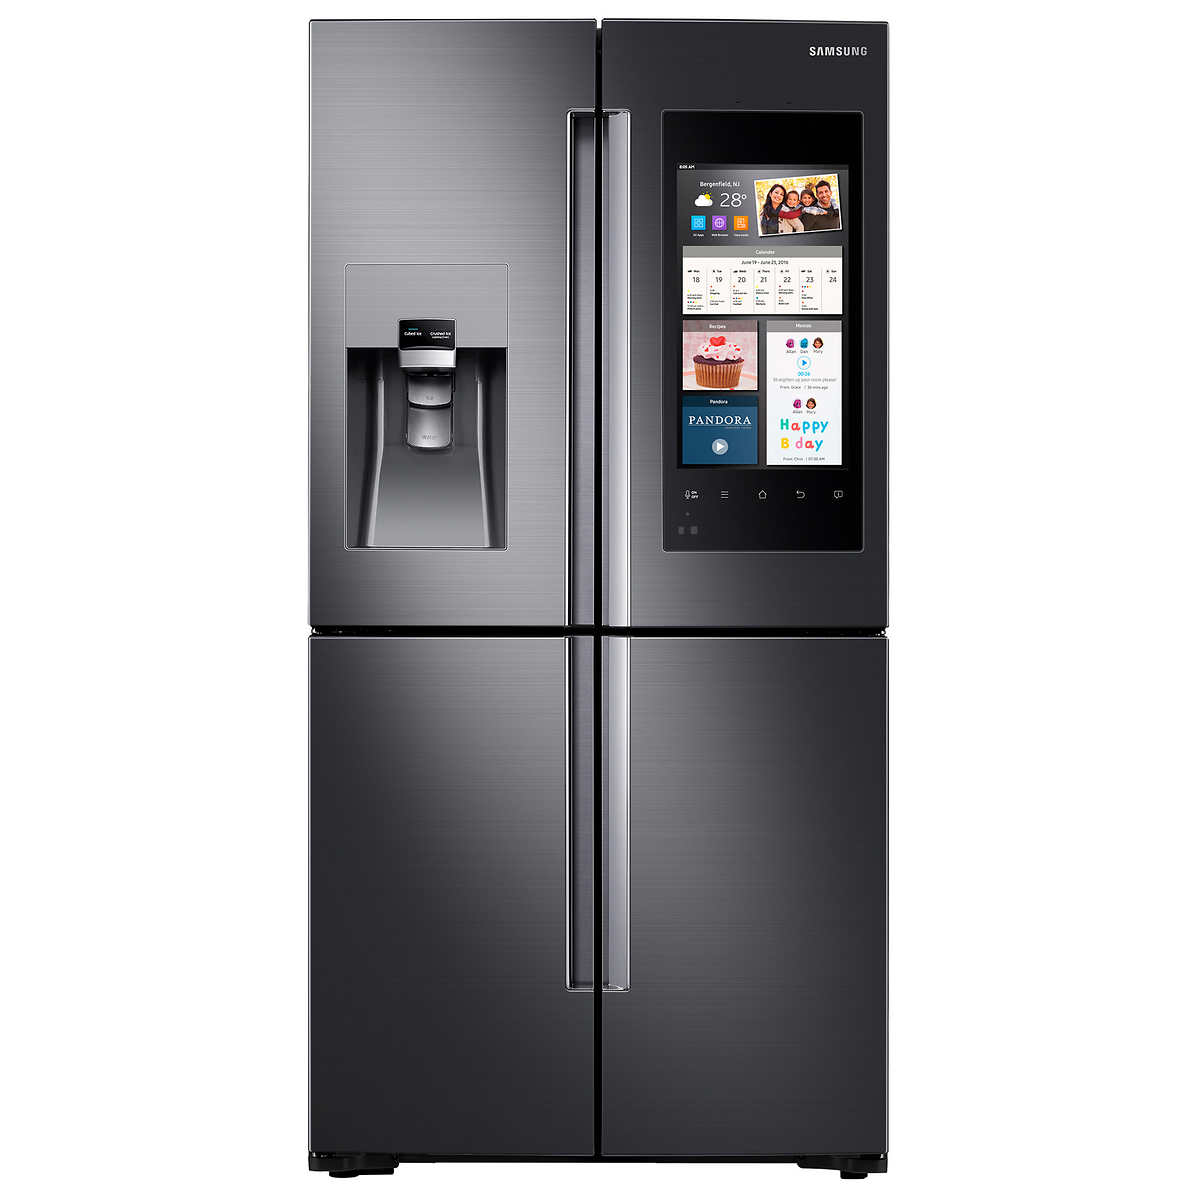 refrigerators costco samsung 22cuft 4 door french door counter depth refrigerator with family hub in black